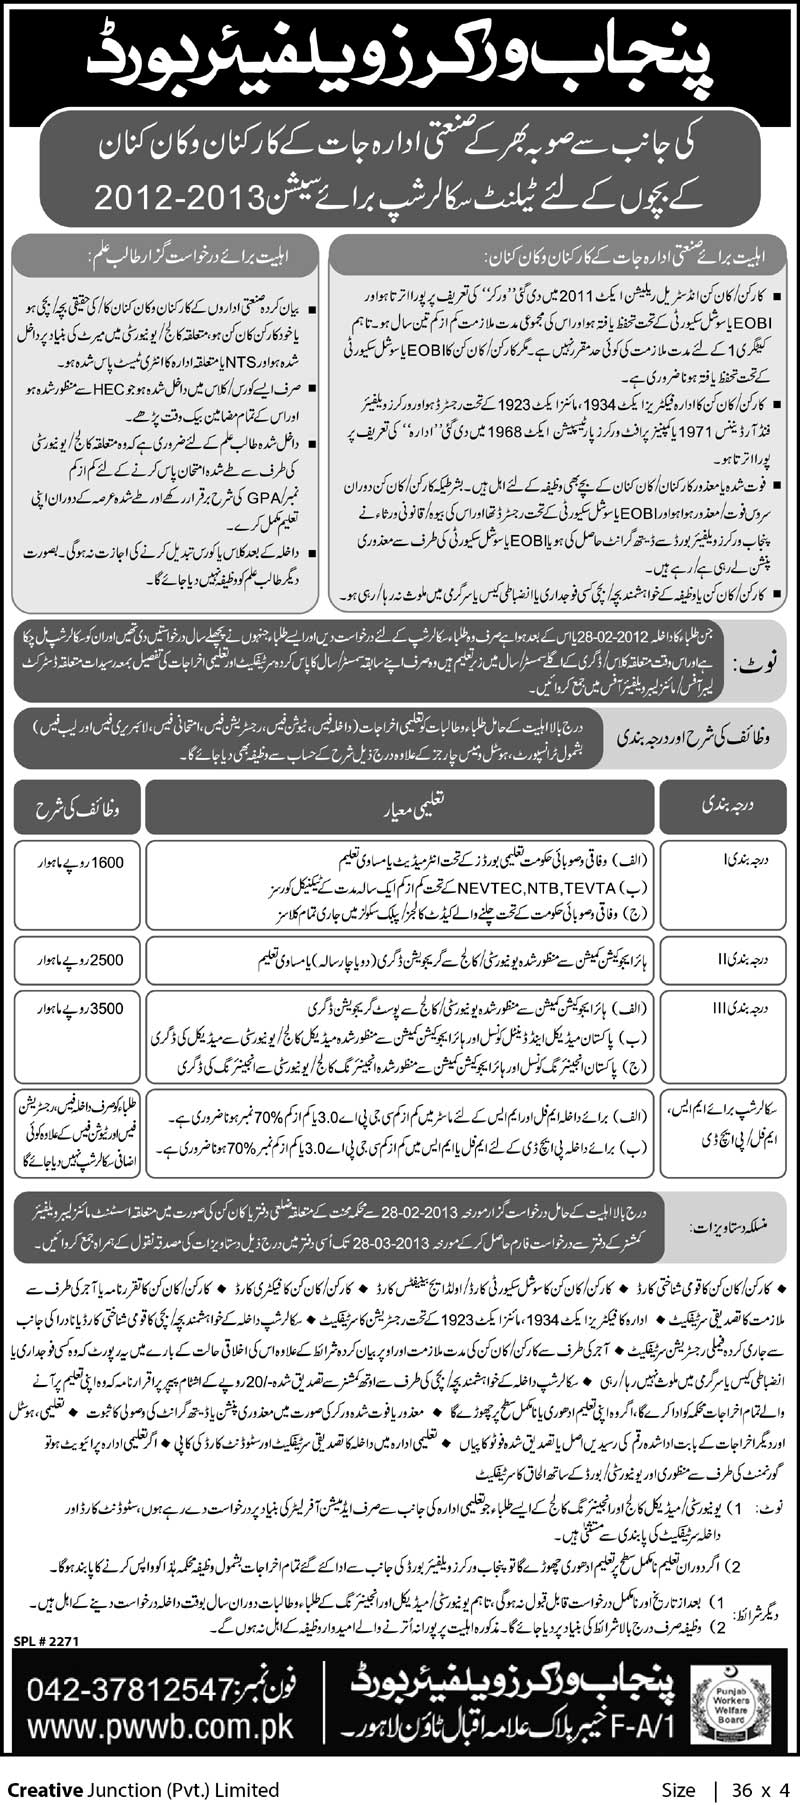 Punjab Workers Welfare Board Talent Scholarship Form 2013 Application